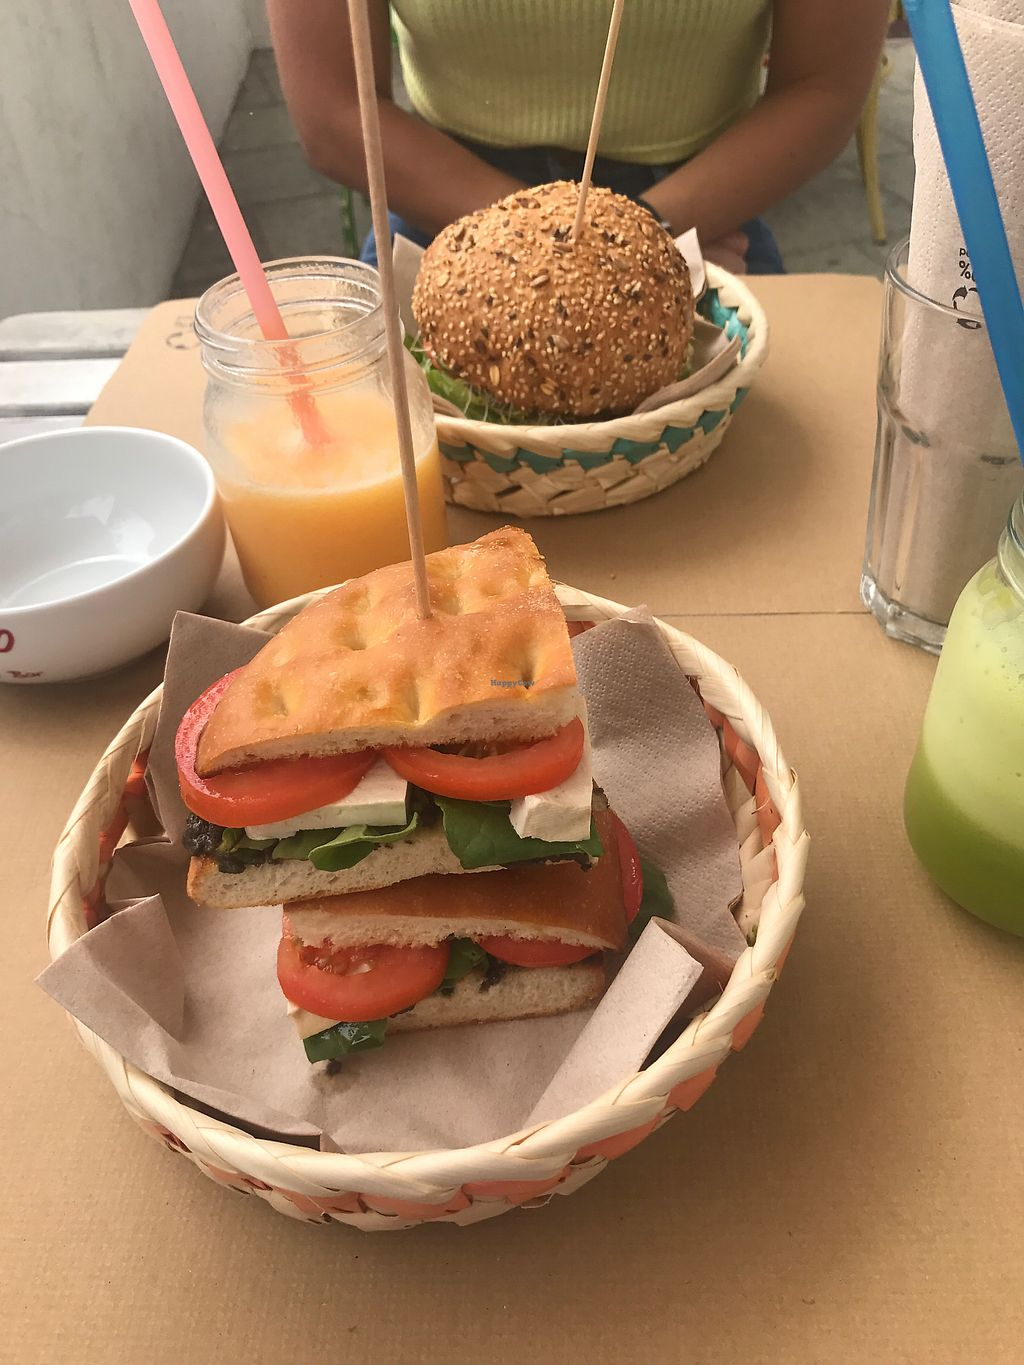 "Photo of H2O Juice Bar & Vegan Cafe  by <a href=""/members/profile/chloedaydream"">chloedaydream</a> <br/>tofu sandwich  <br/> September 2, 2017  - <a href='/contact/abuse/image/64475/300183'>Report</a>"